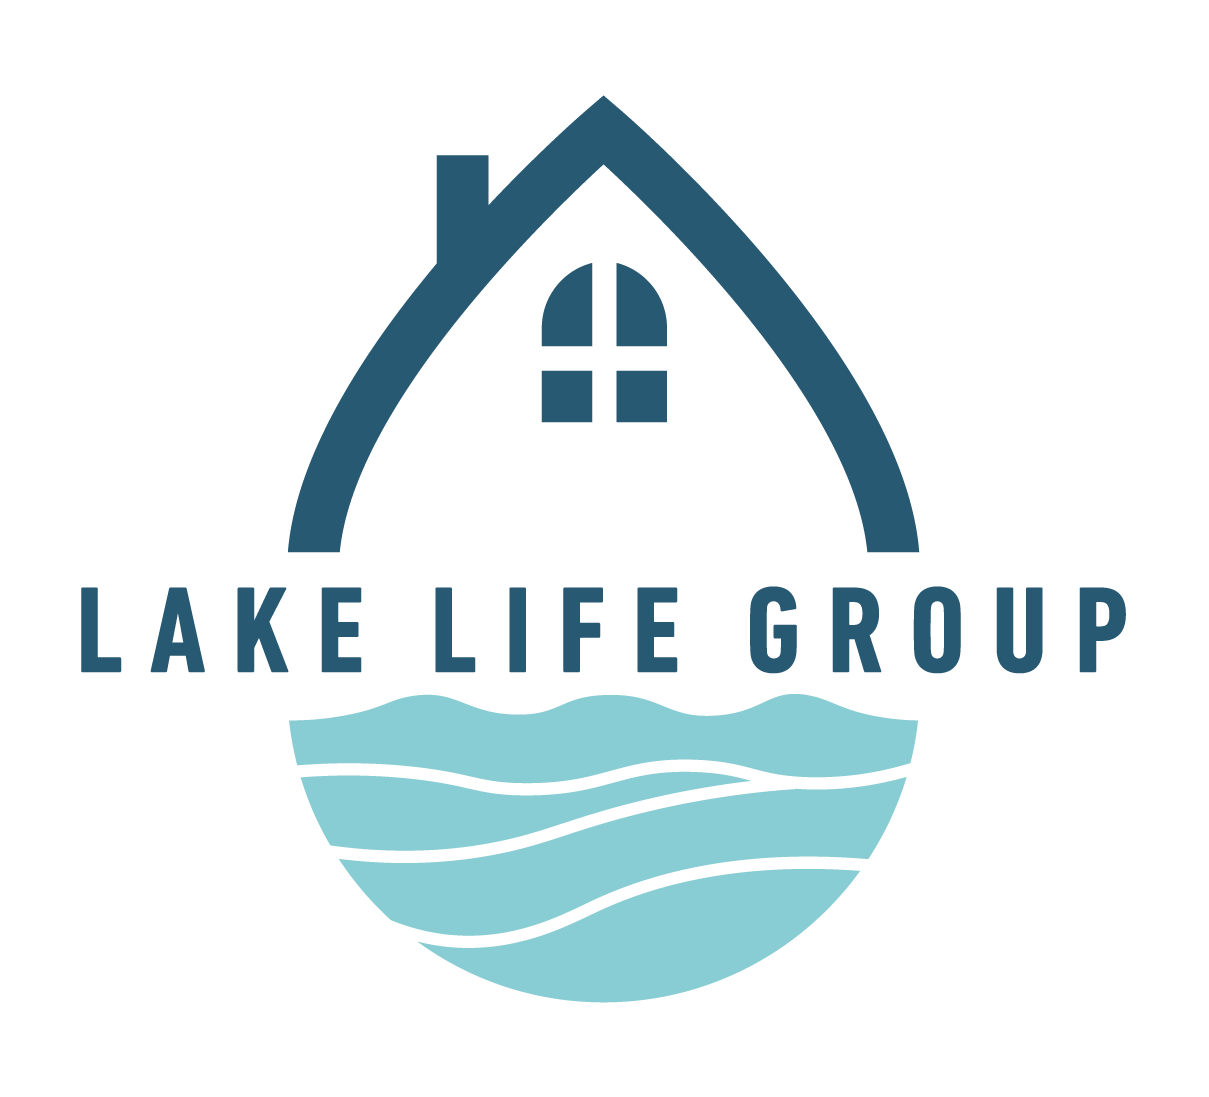 Carla Agnini - The Lake Life Grp.